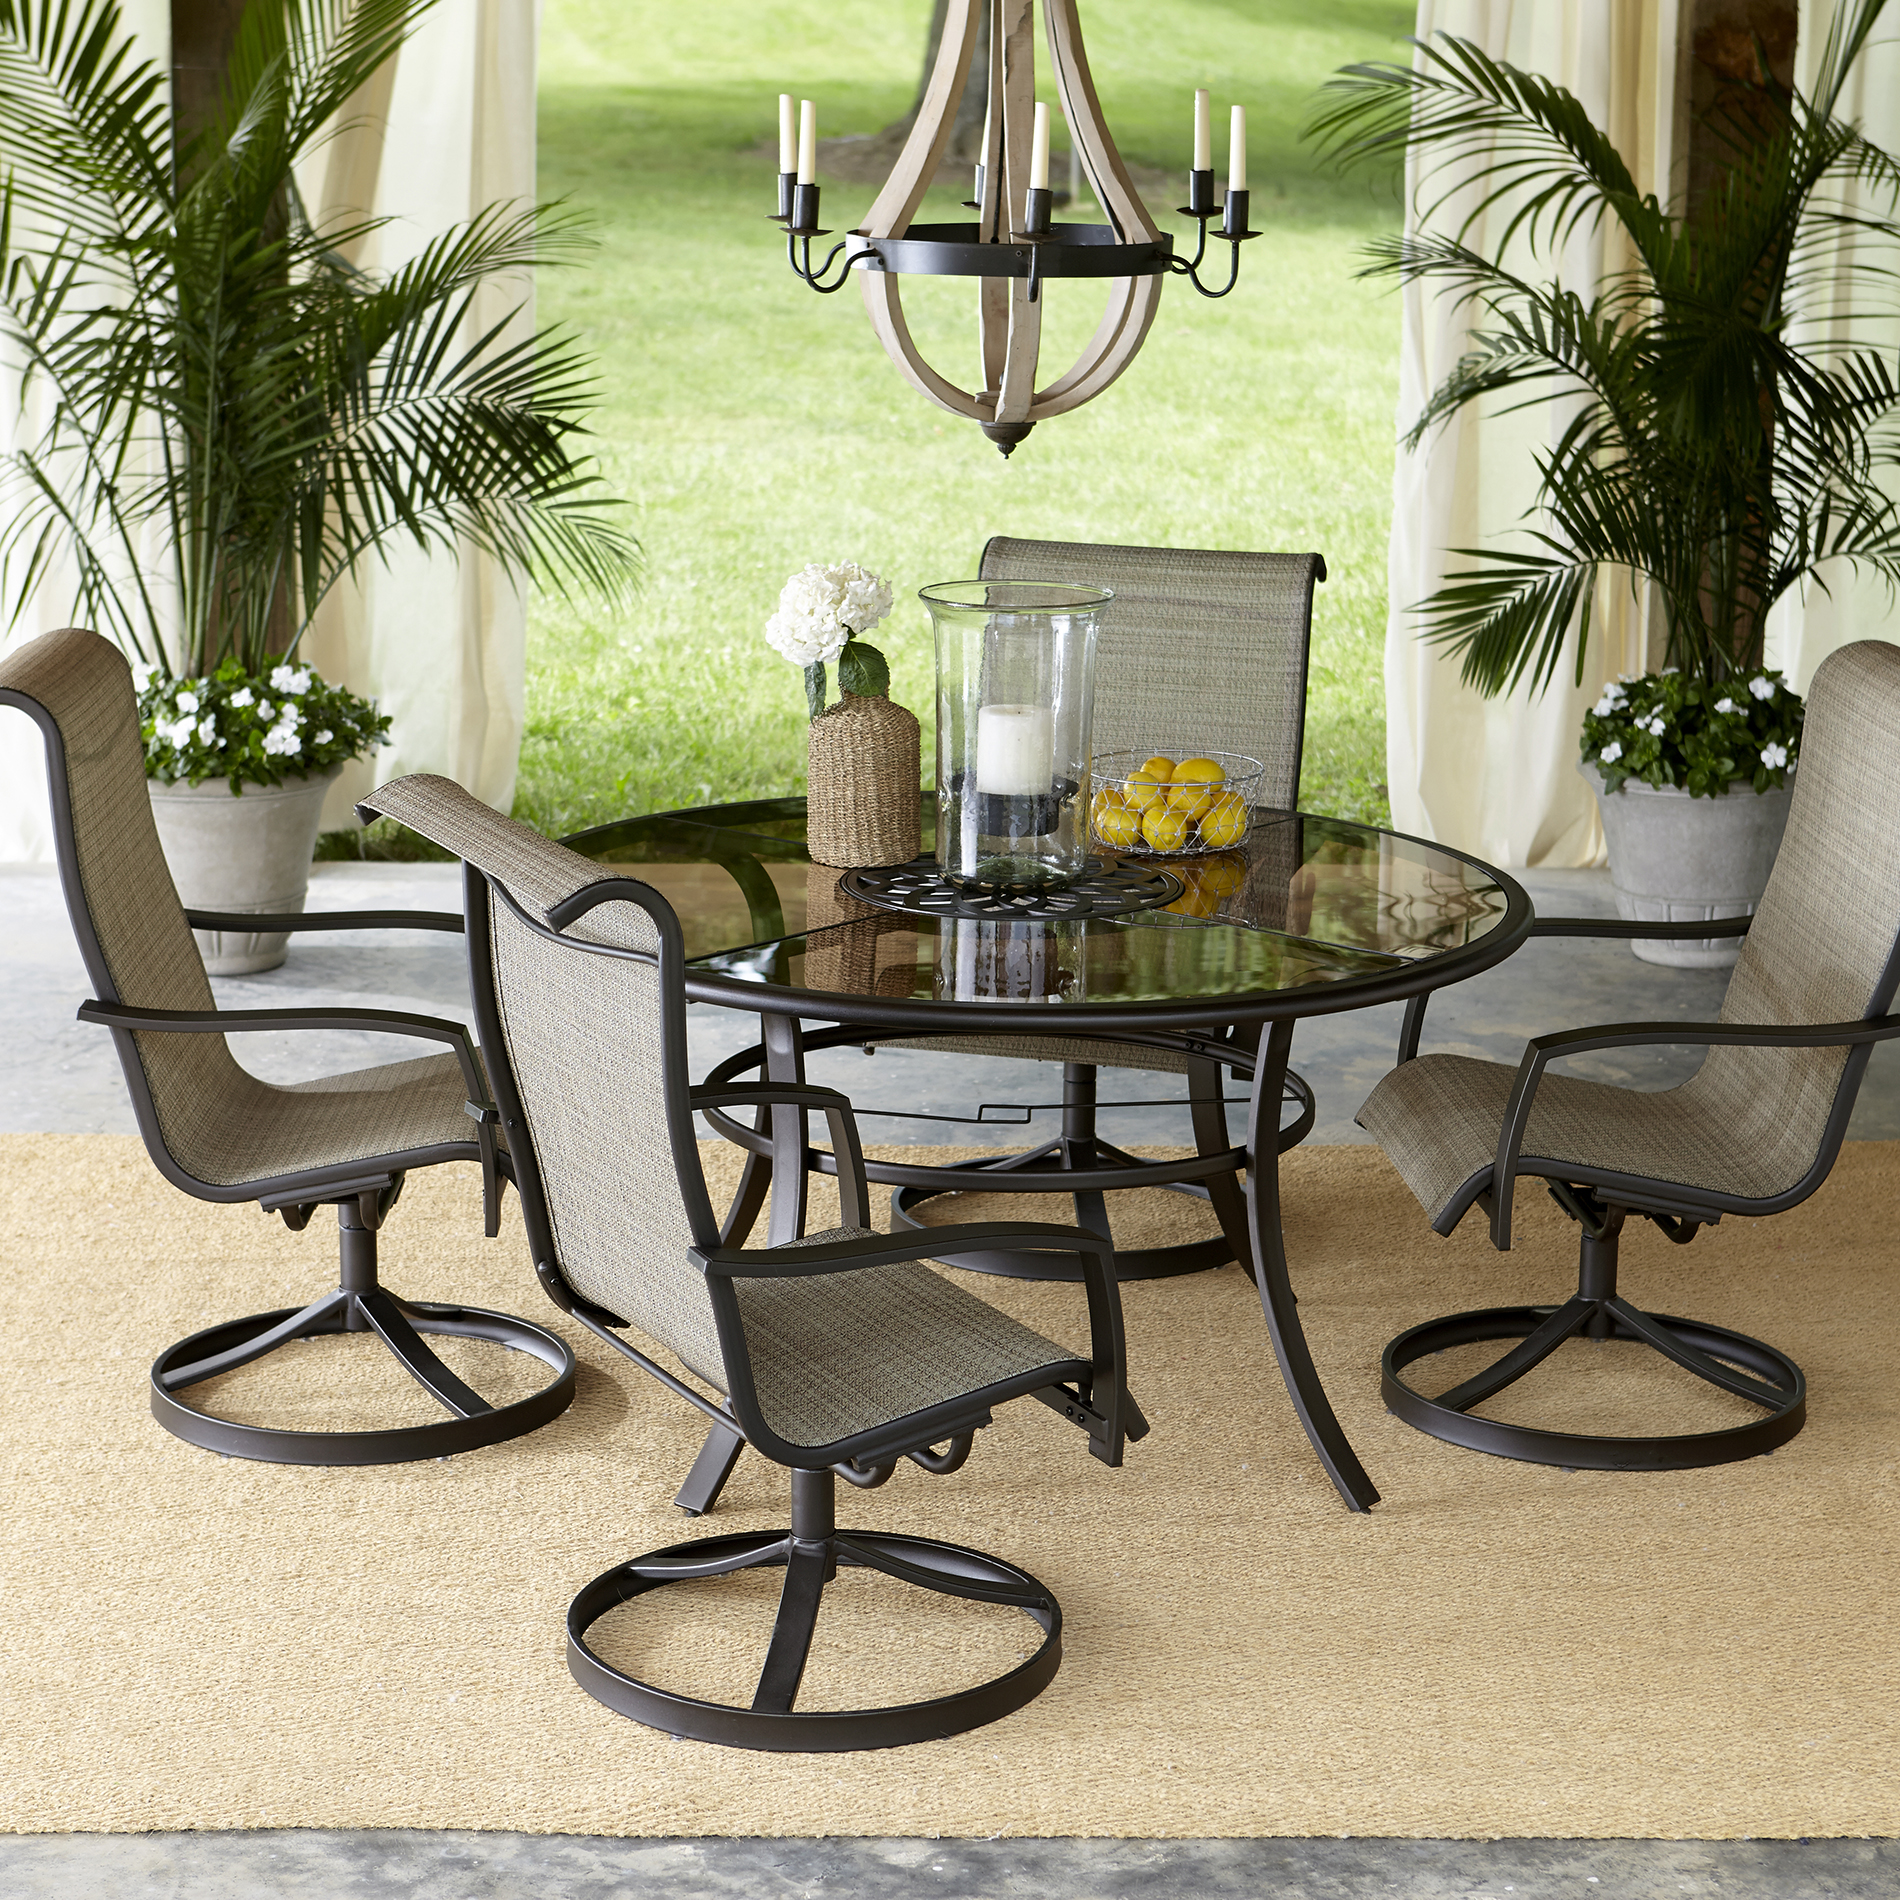 Garden Oasis Providence 5 Piece Swivel Dining Set - Sears Patio Dining Sets